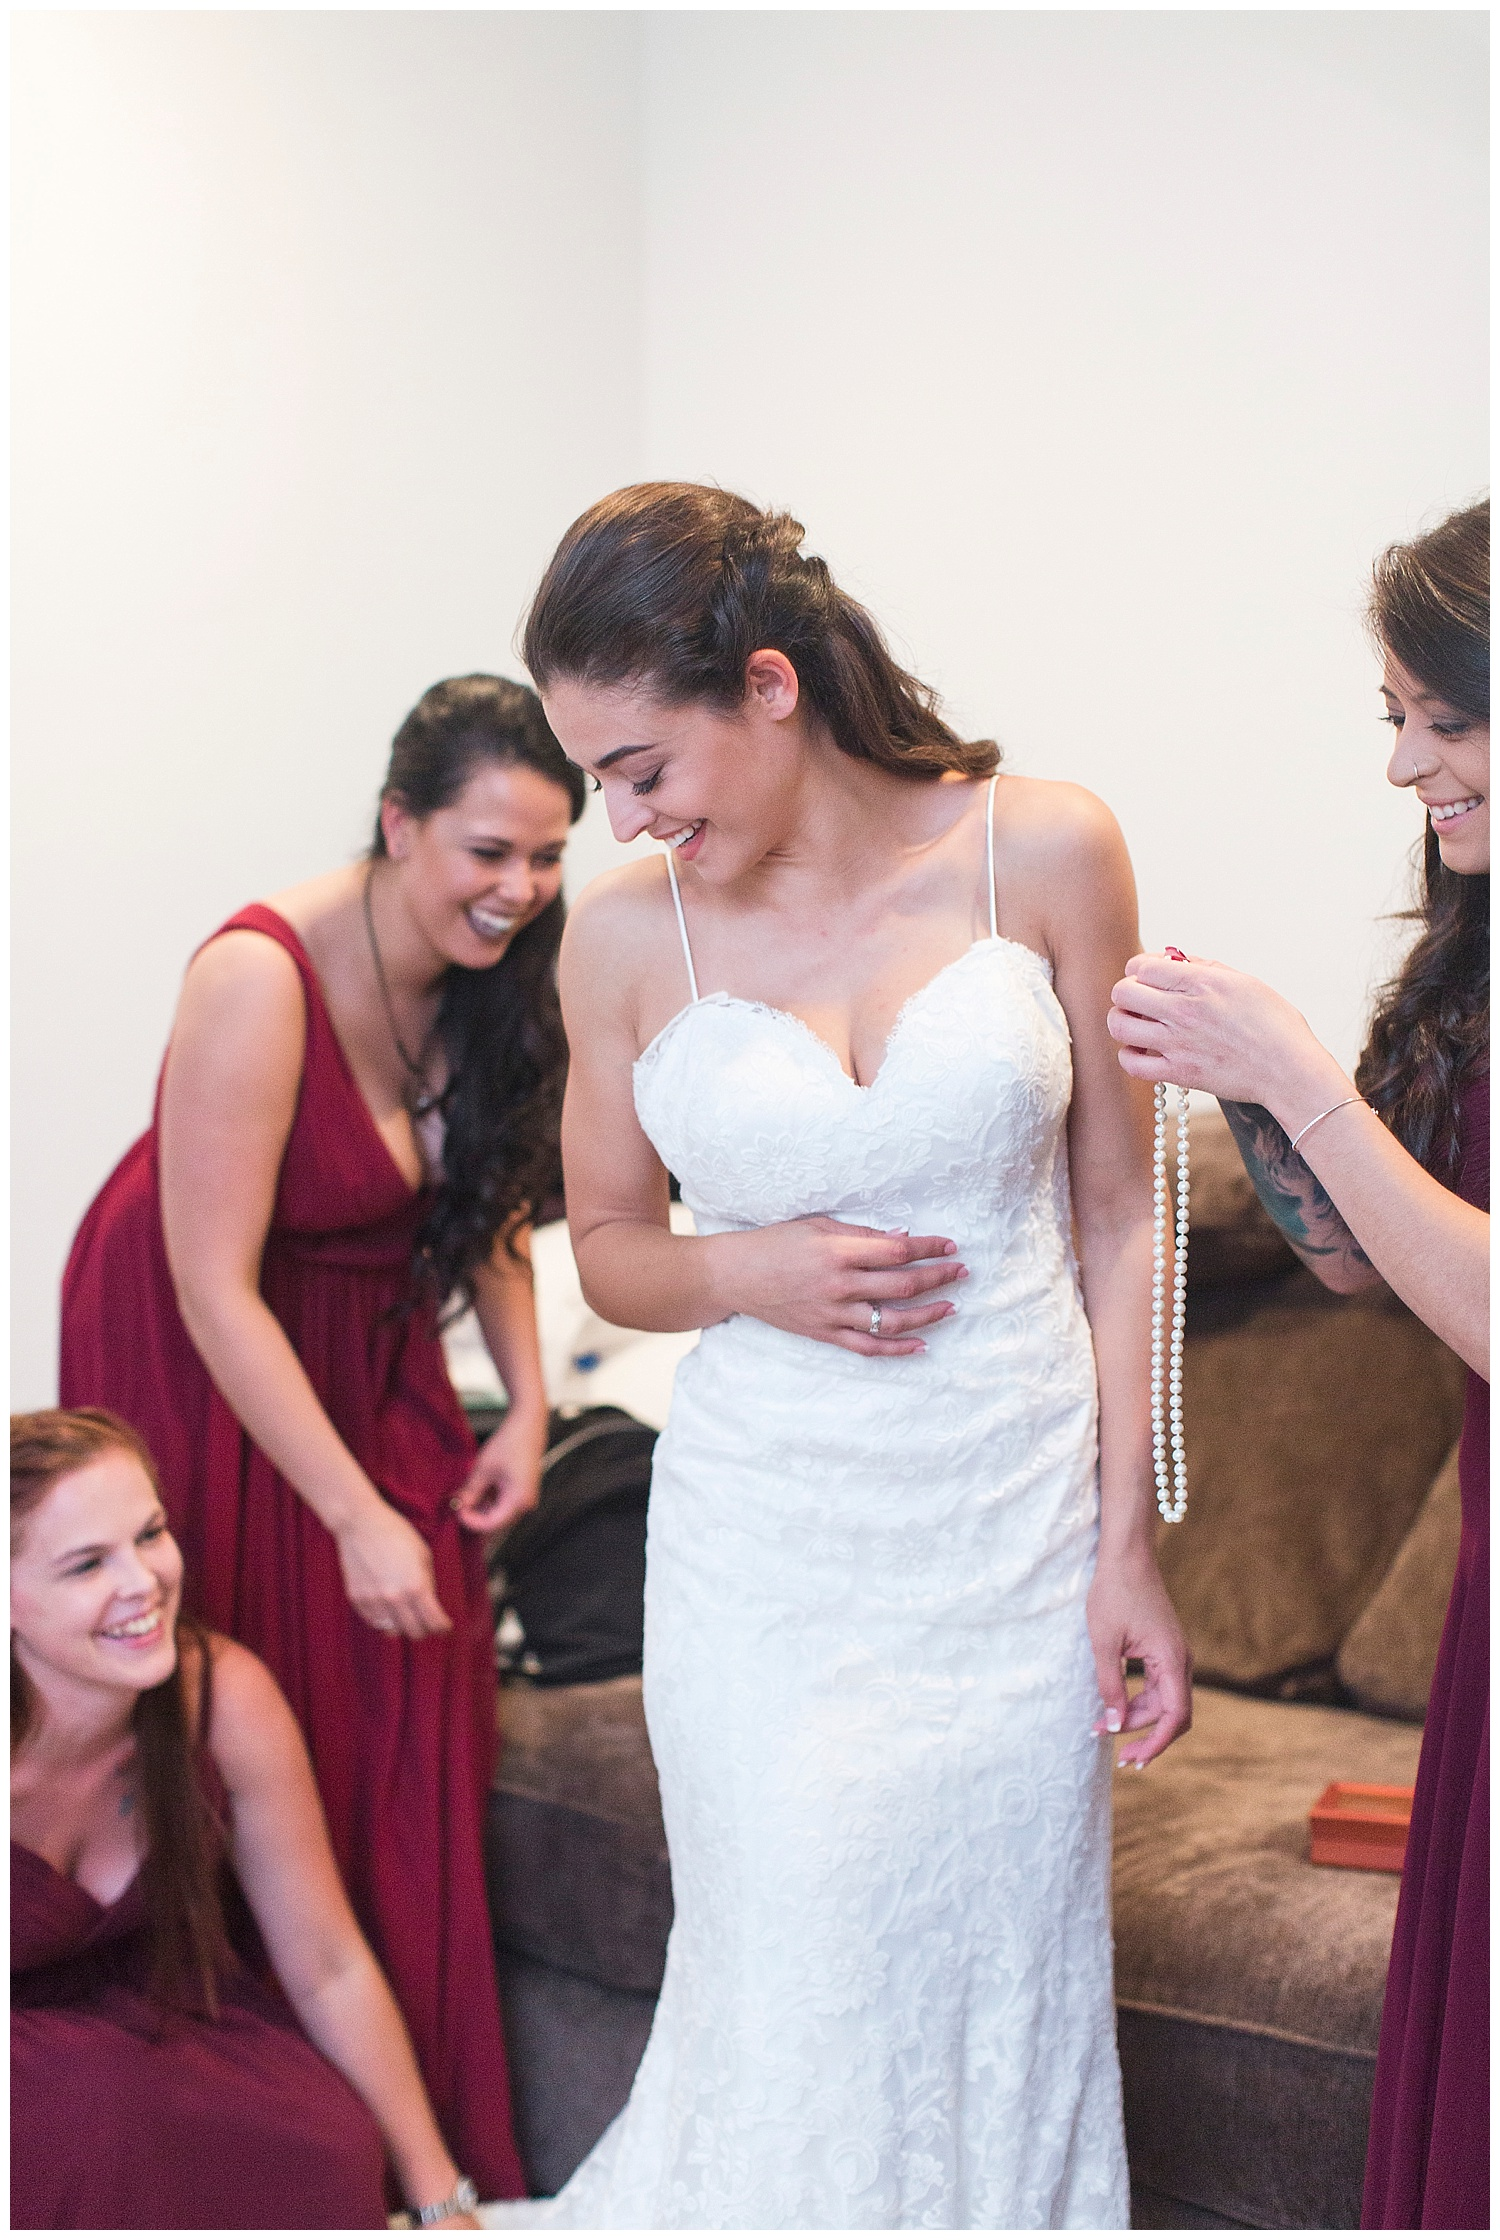 a_Ryan+Allyson_Renoda Campbell Photography_San Luis Obispo Wedding Photographer-9311.jpg